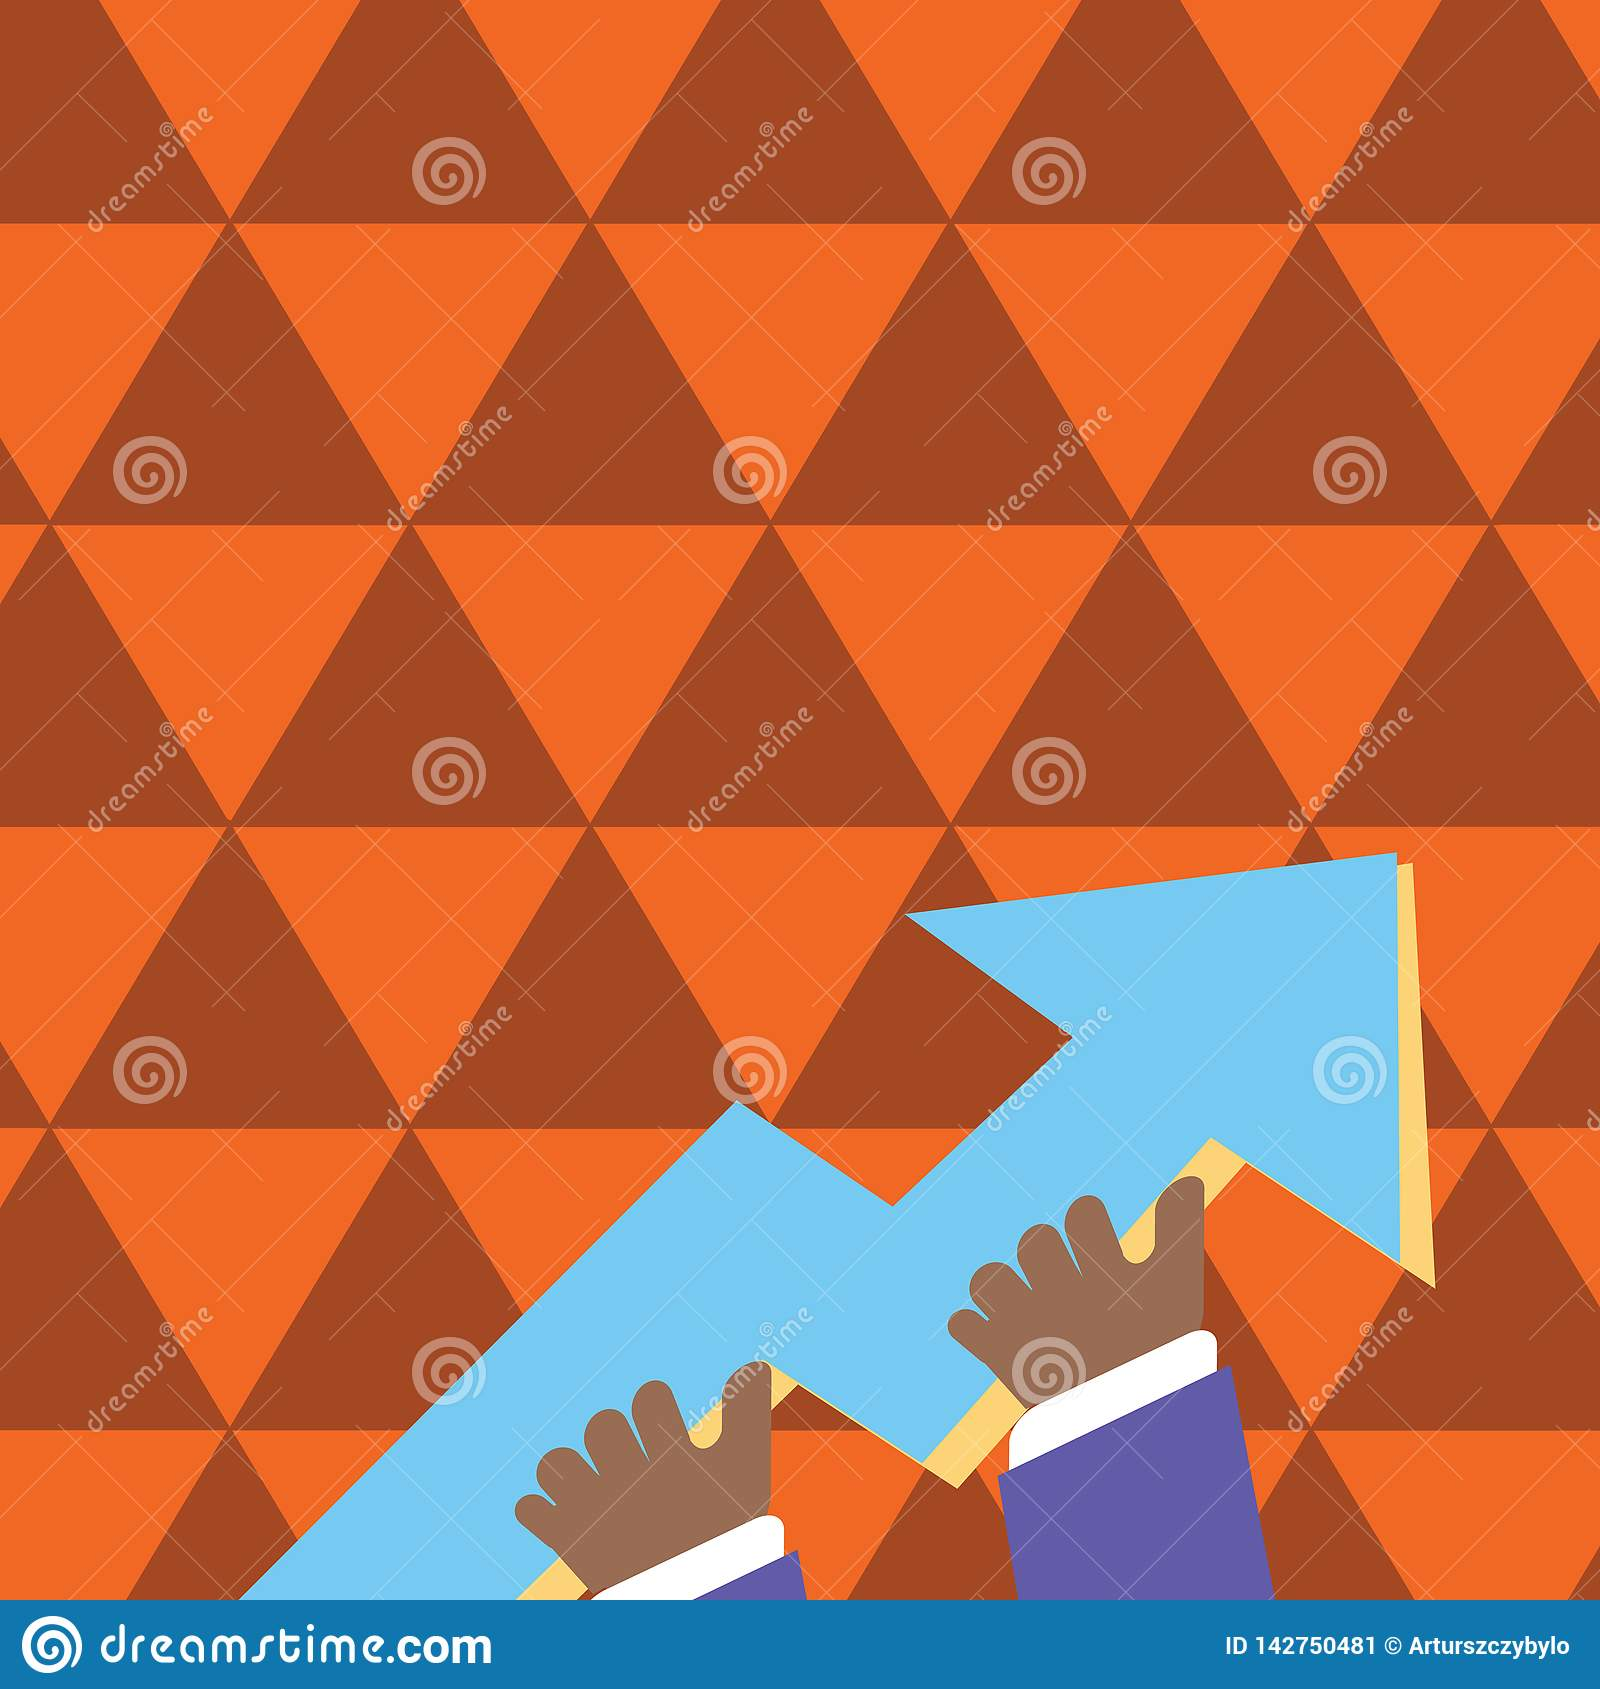 Illustration of Businessman Hand Holding Colorful Huge 3D Arrow Pointing and Going Up. Creative Background Concept for